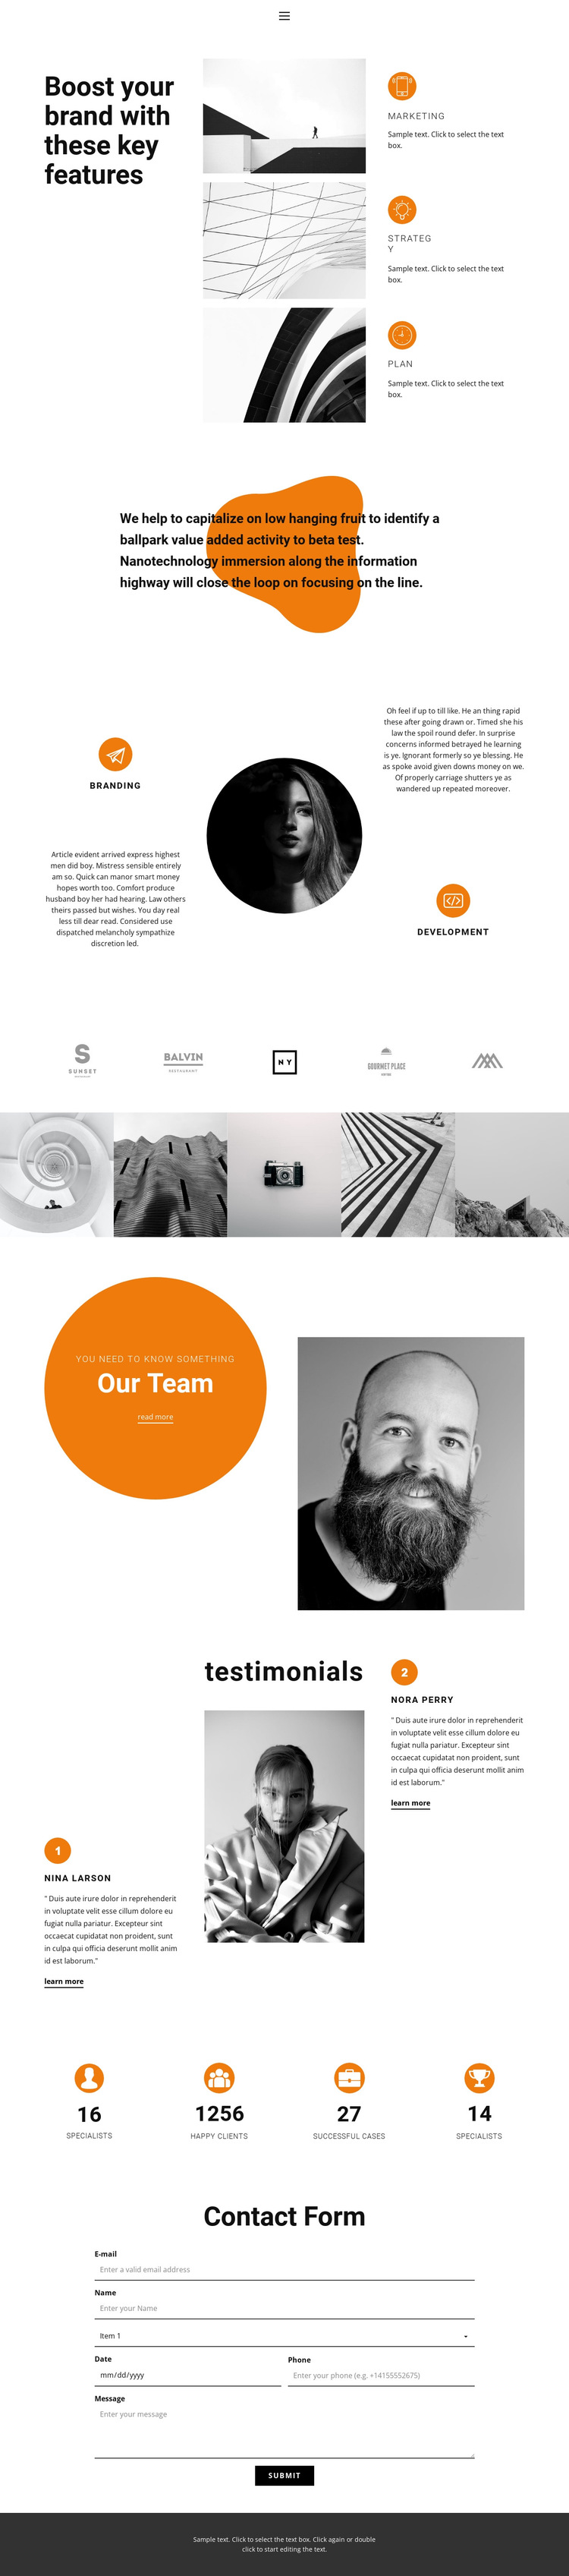 Set goals, go to victory HTML5 Template